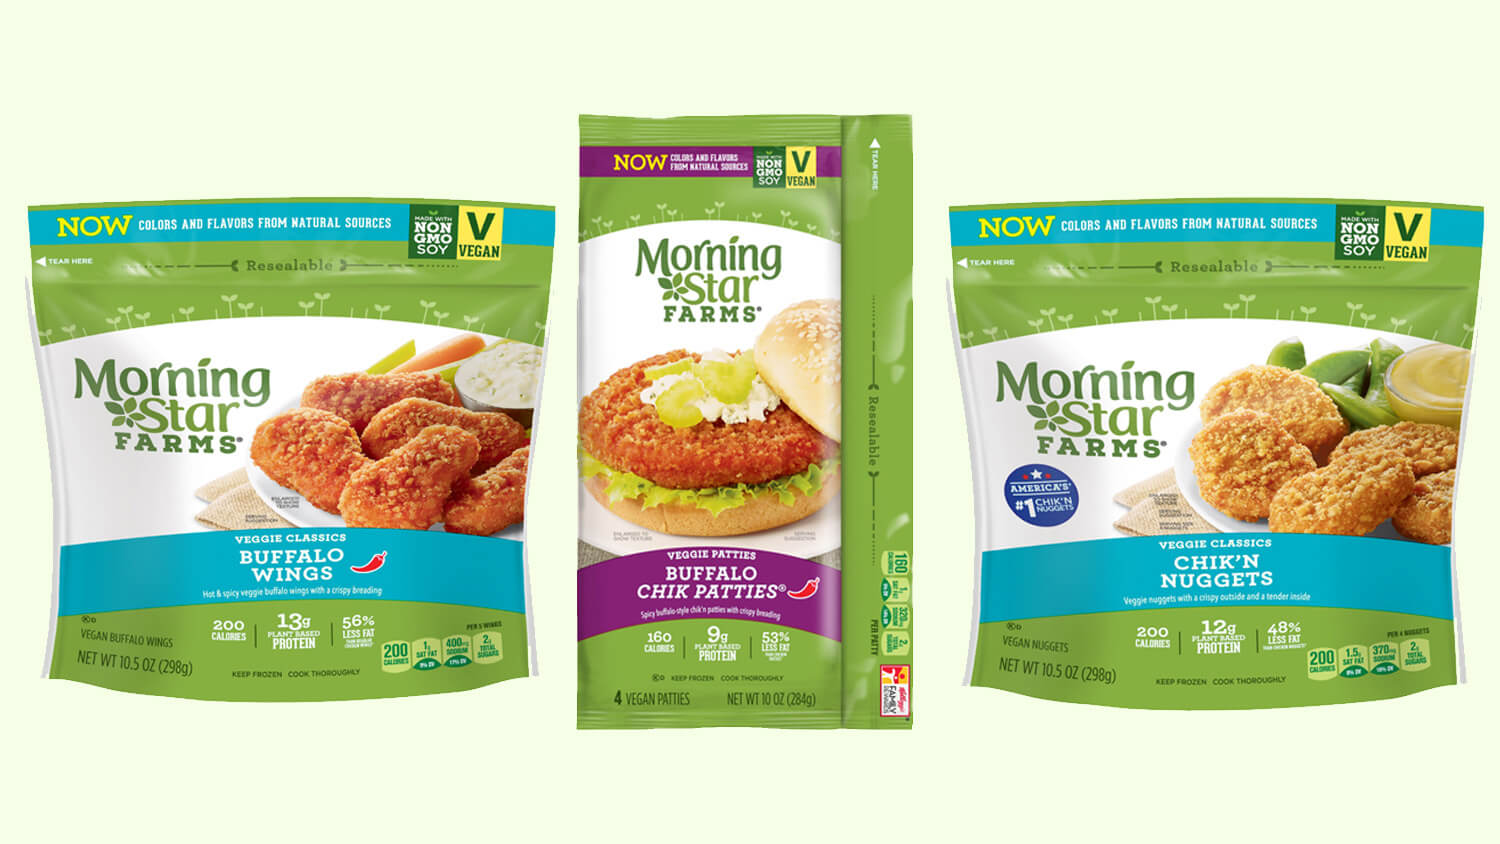 3 Morningstar Farms Chicken Products Are Now Vegan